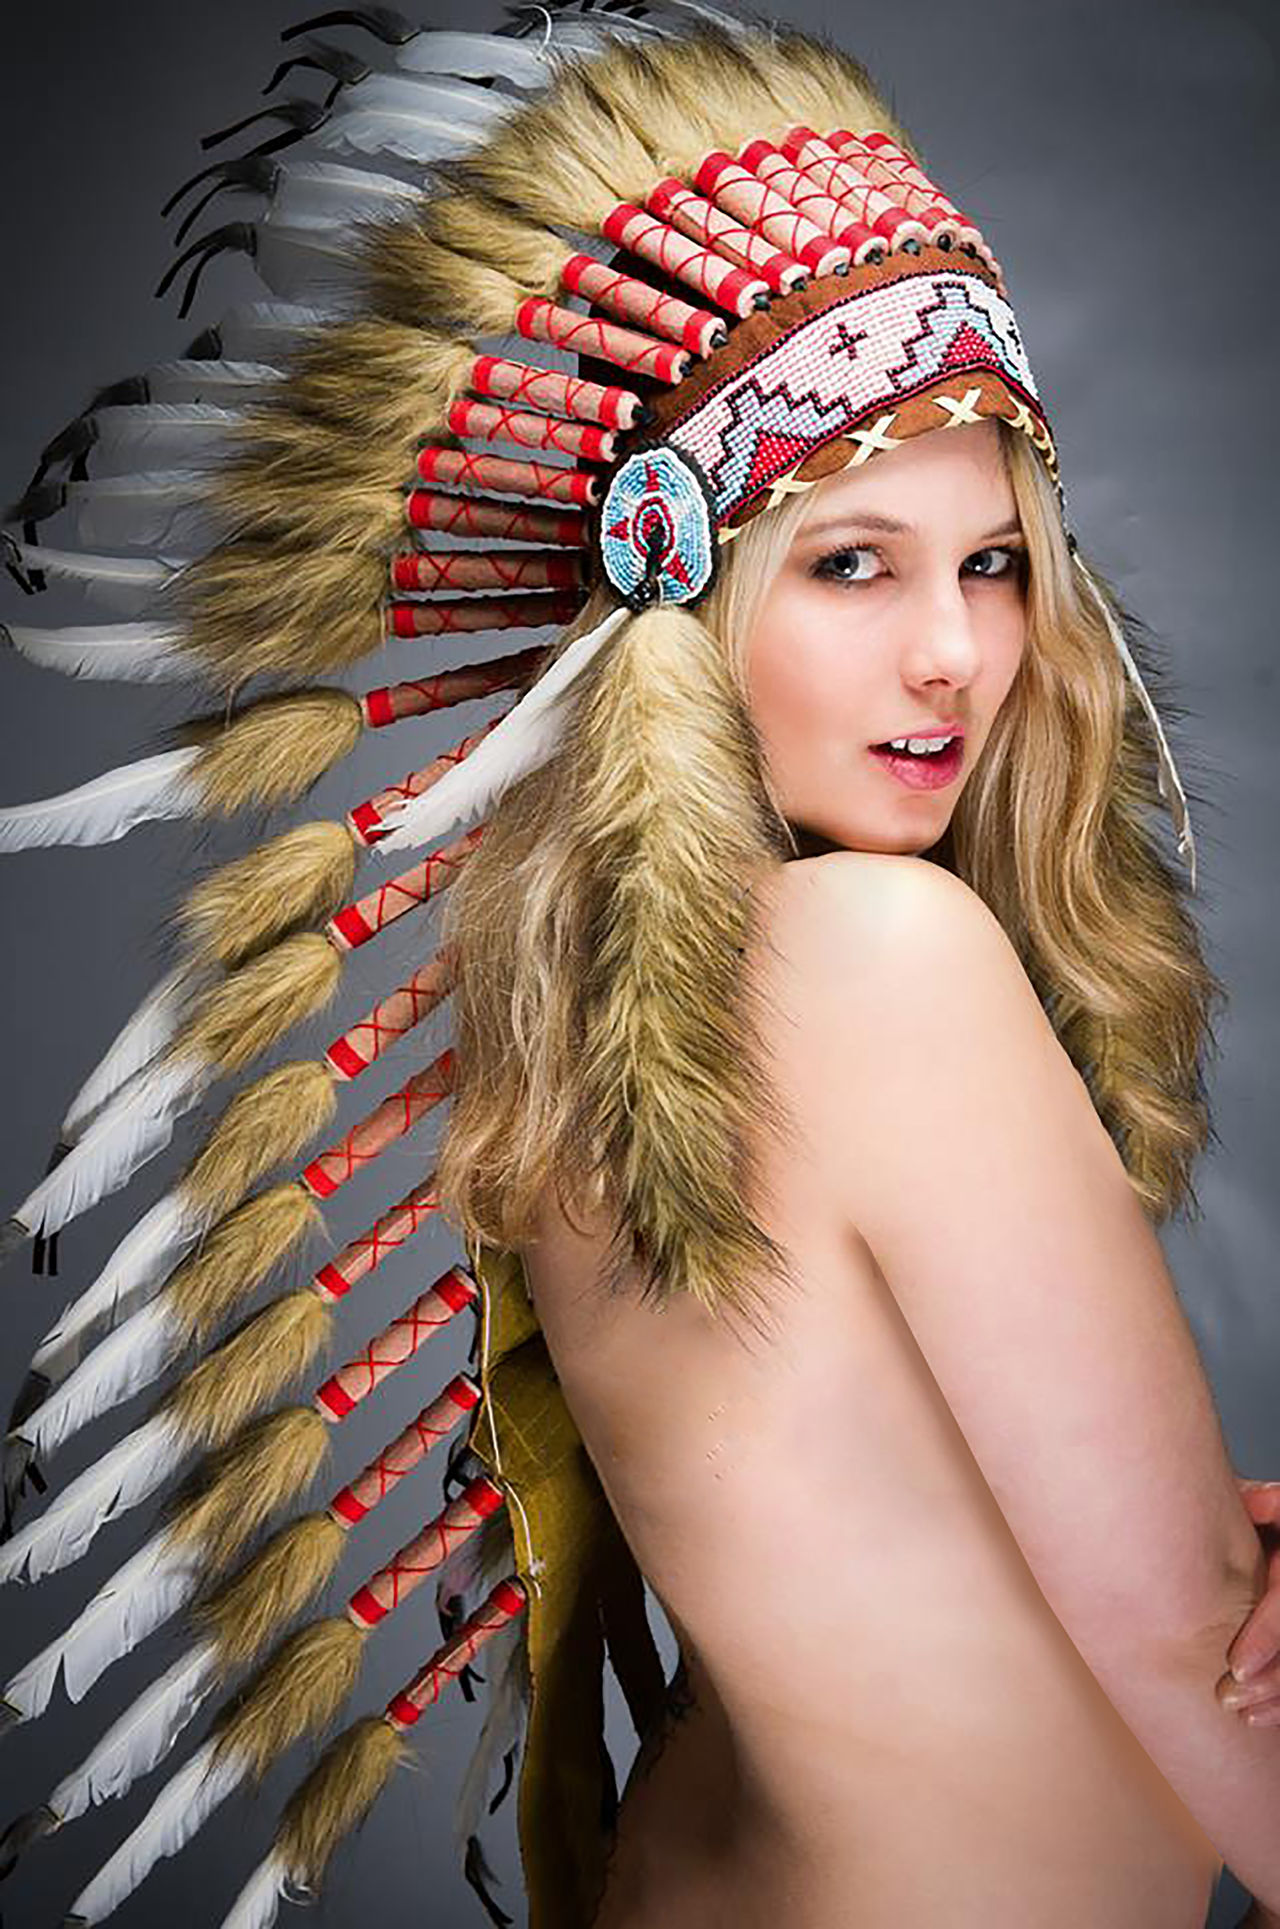 Adult Adults Only Arts Culture And Entertainment Beautiful People Beautiful Woman Beauty Blond Hair Close-up Day Fashion Fashion Model Headdress Indoors  One Person One Woman Only One Young Woman Only Only Women People Portrait Smiling Warm Clothing Young Adult Young Women